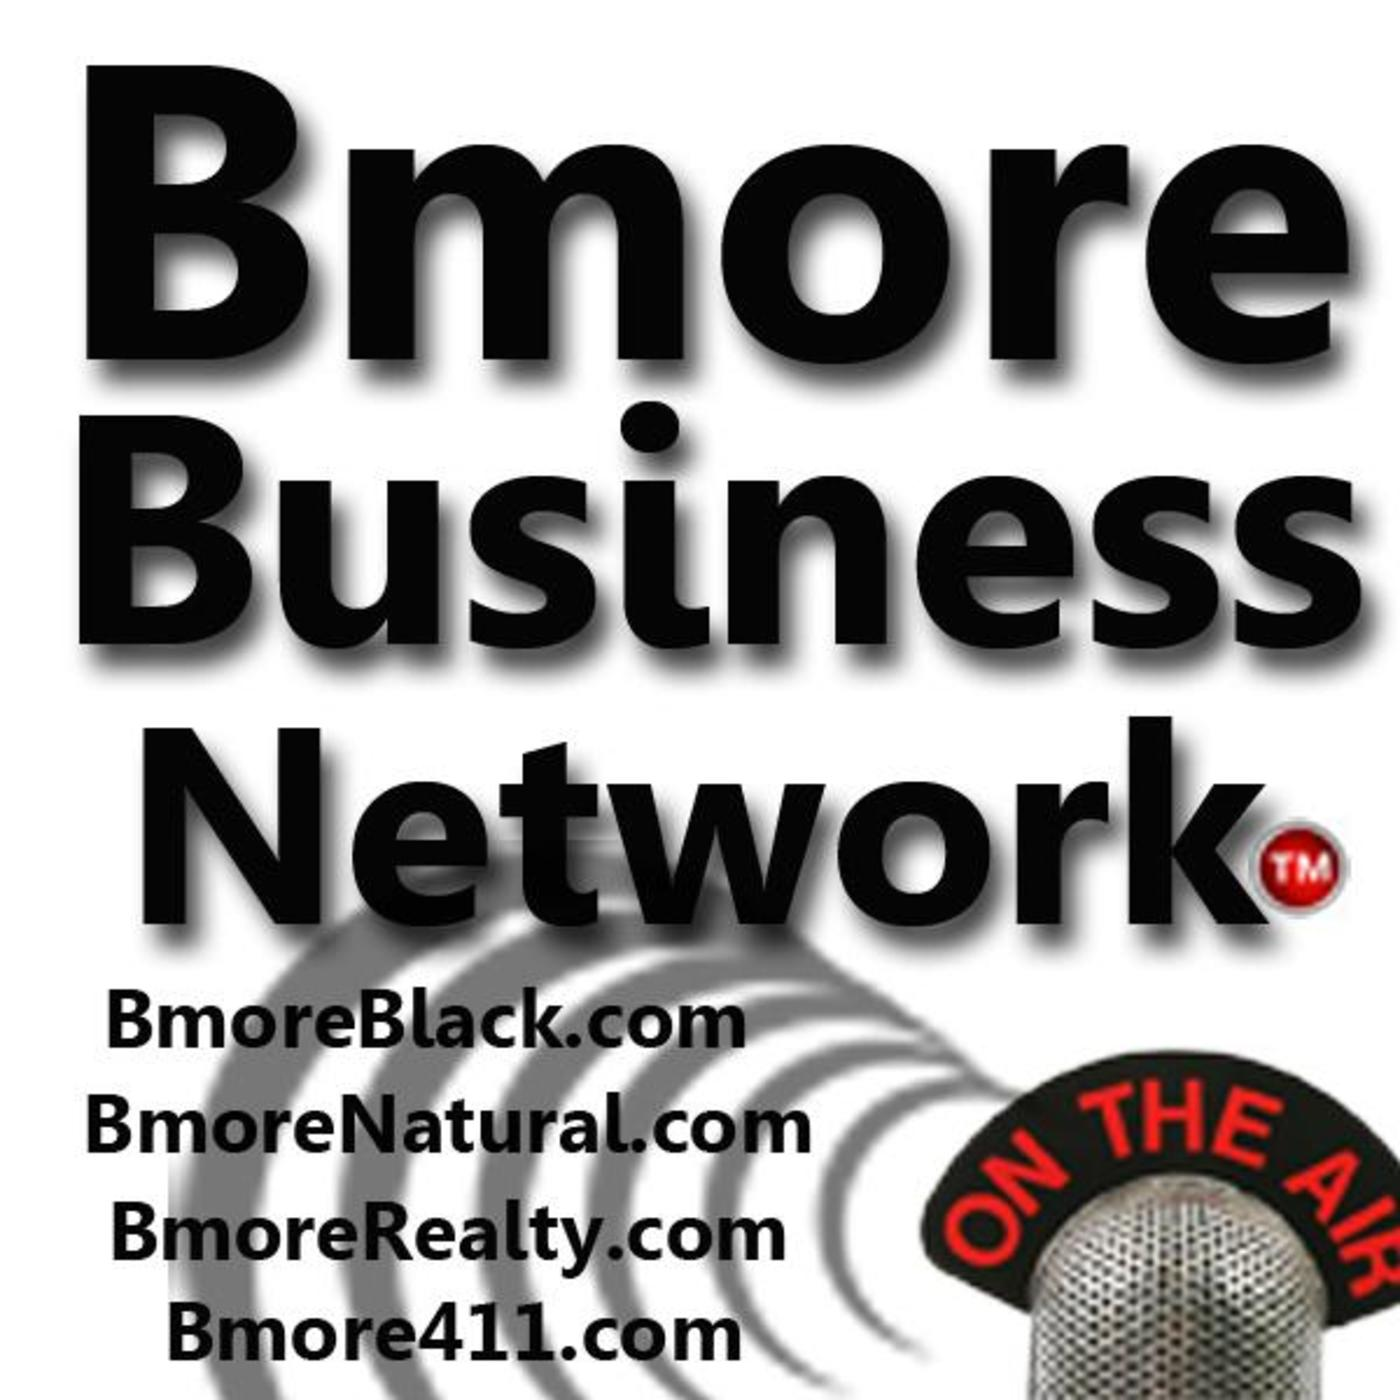 BmoreBusiness Network